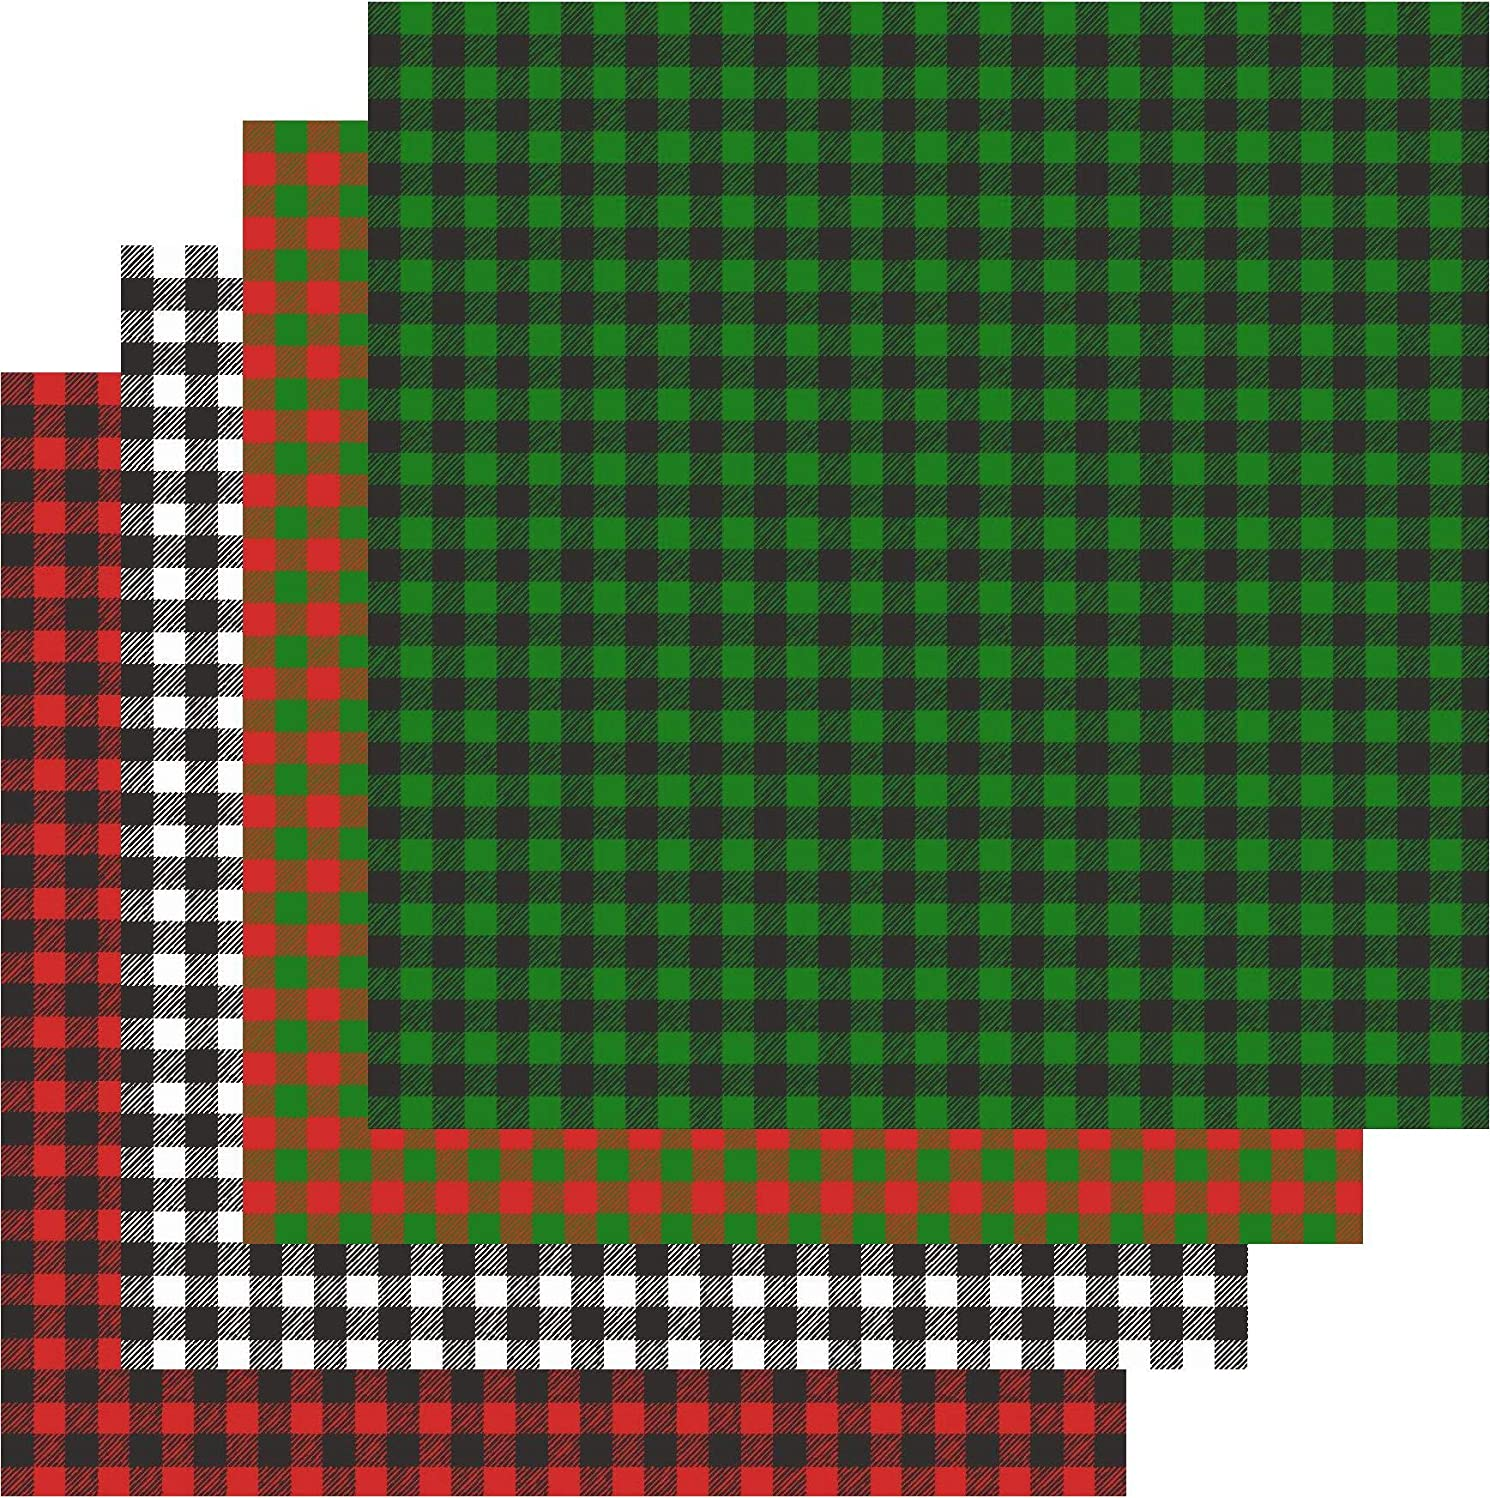 Buffalo Check Vinyl Sheets, Buffalo Plaid Adhesive Vinyl, Red Green Black White, 4-12